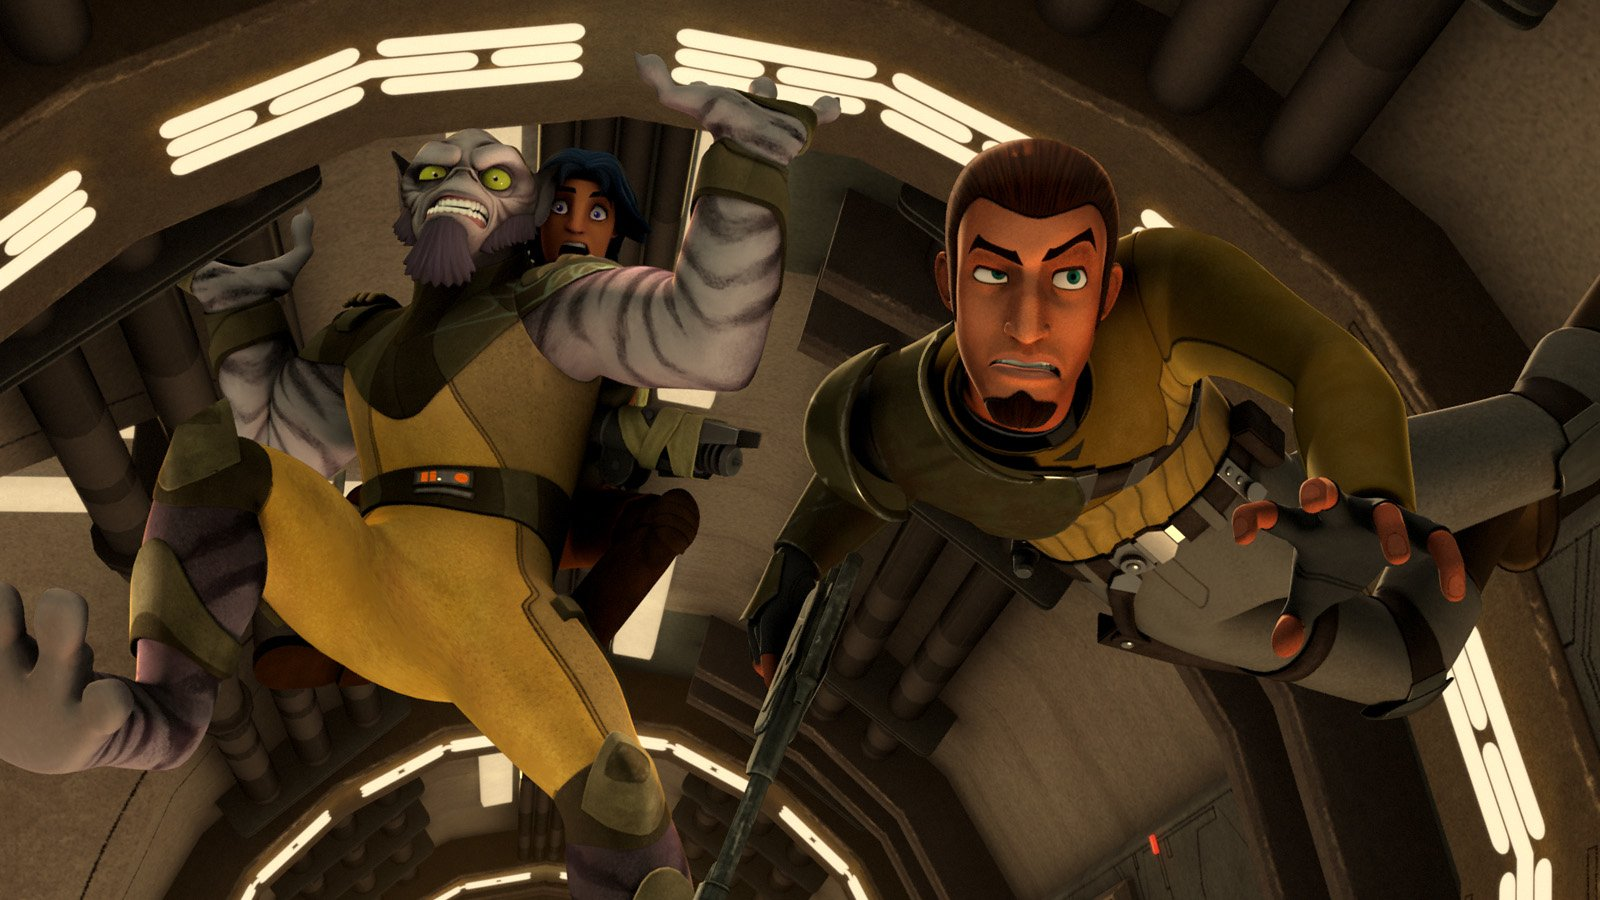 TV Show - Star Wars Rebels  Kanan Jarrus Zeb Orrelios Wallpaper